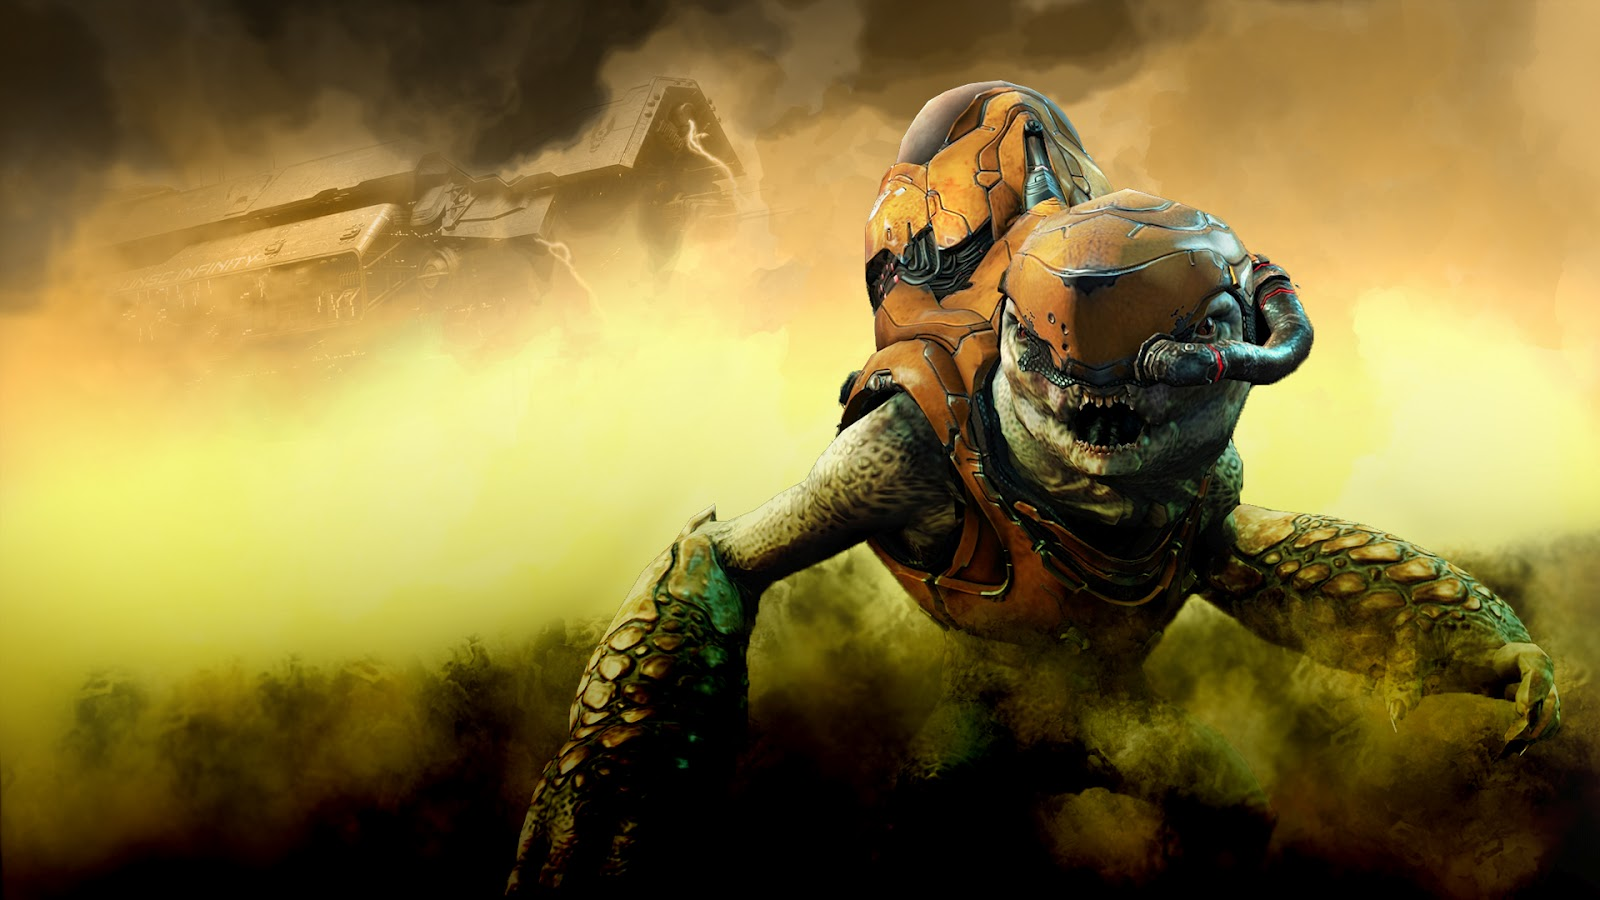 halo 4 wallpaper Jan 01 2013 121604 Picture Gallery 1600x900